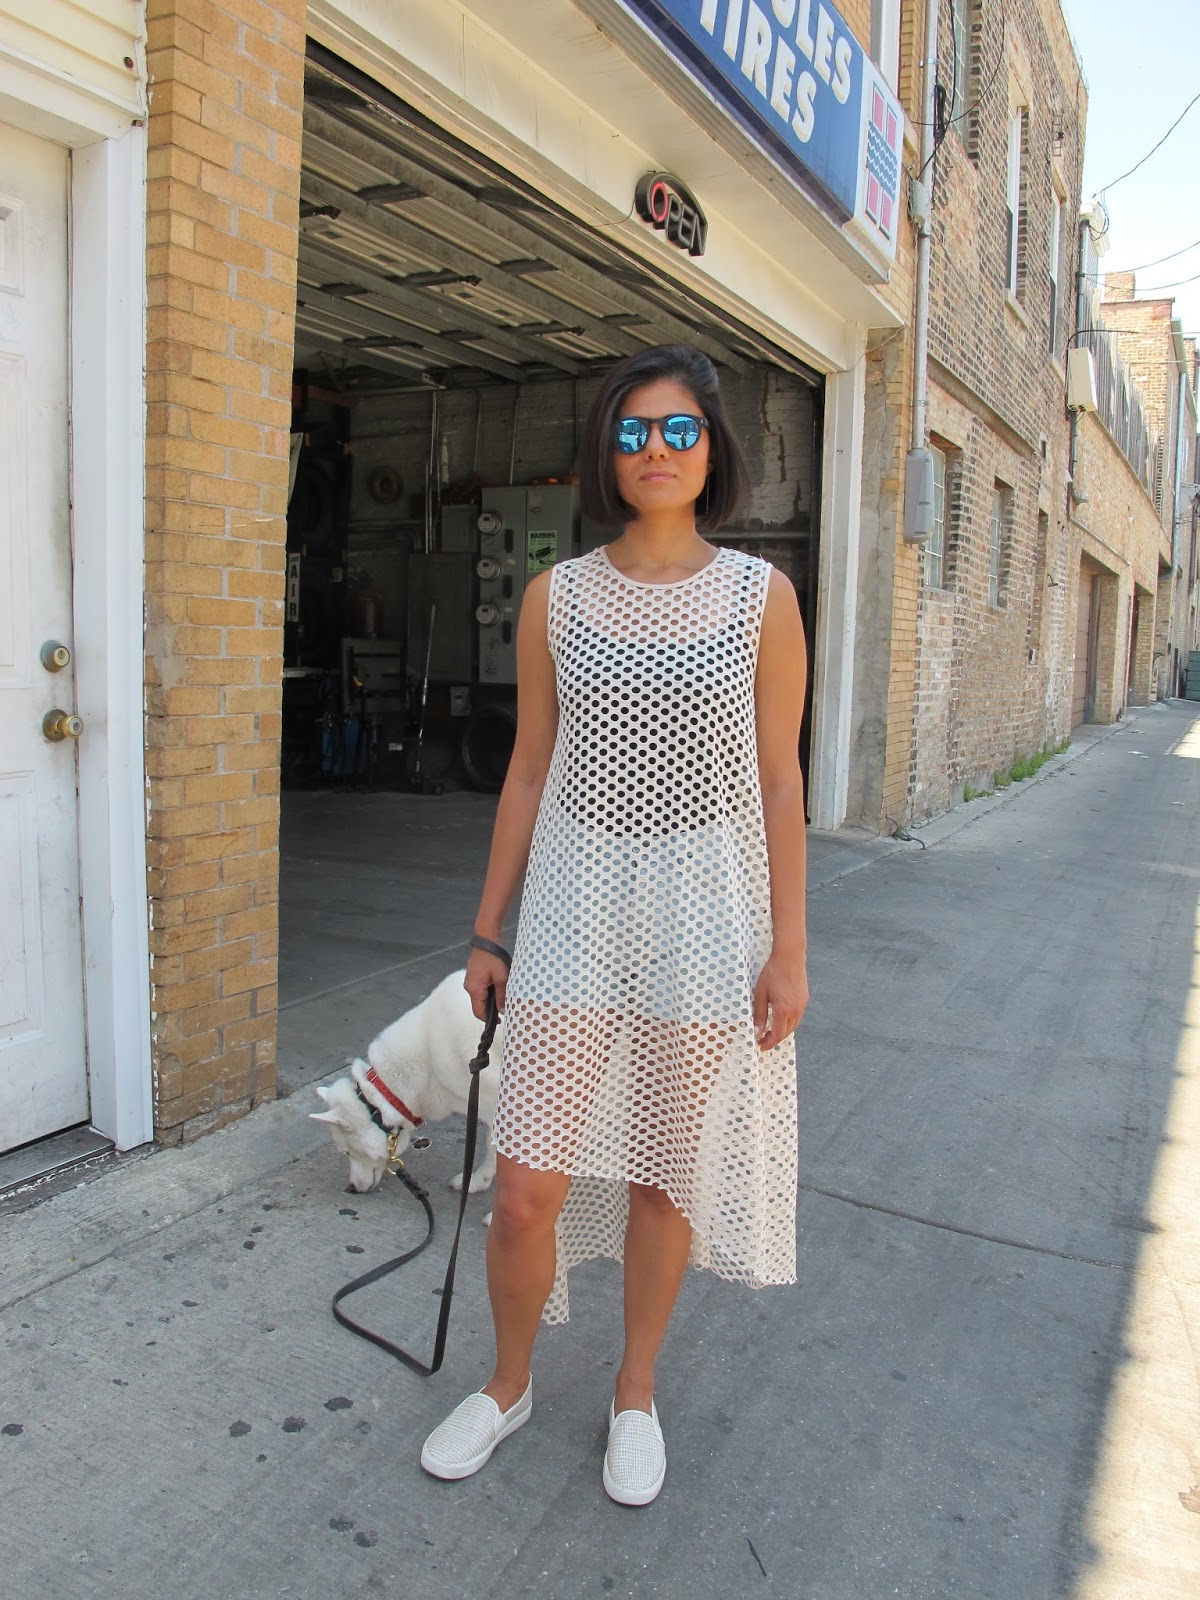 Mayla Chicago Looks A Chicago Street Style Fashion Blog